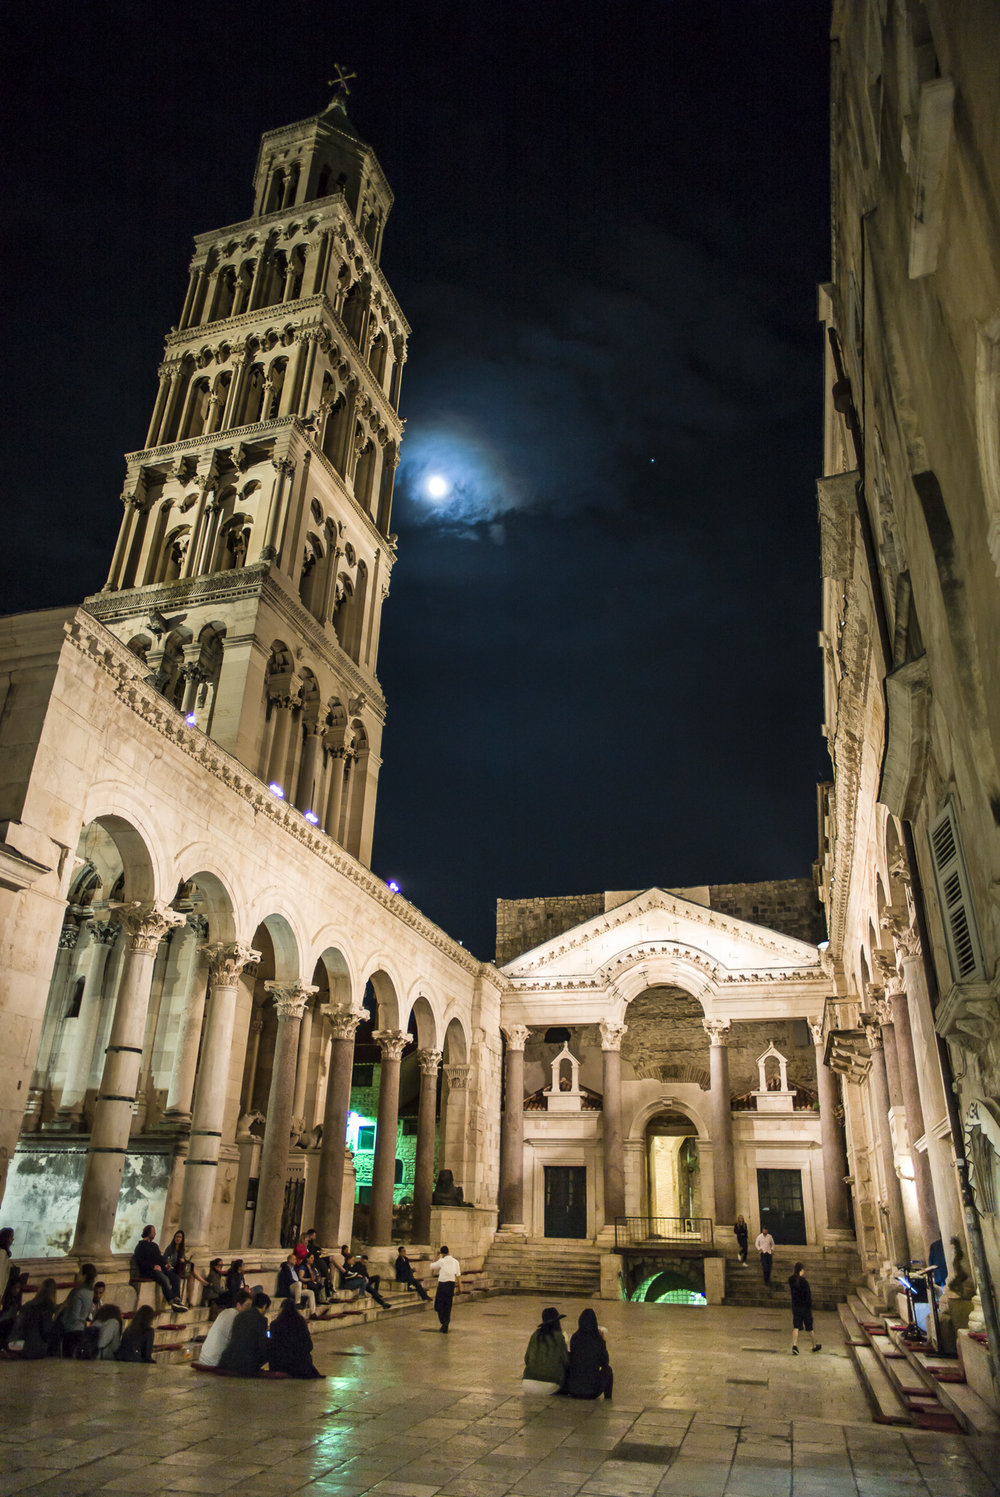 Evening concert at Peristil, the public square at Diocletian's Palace